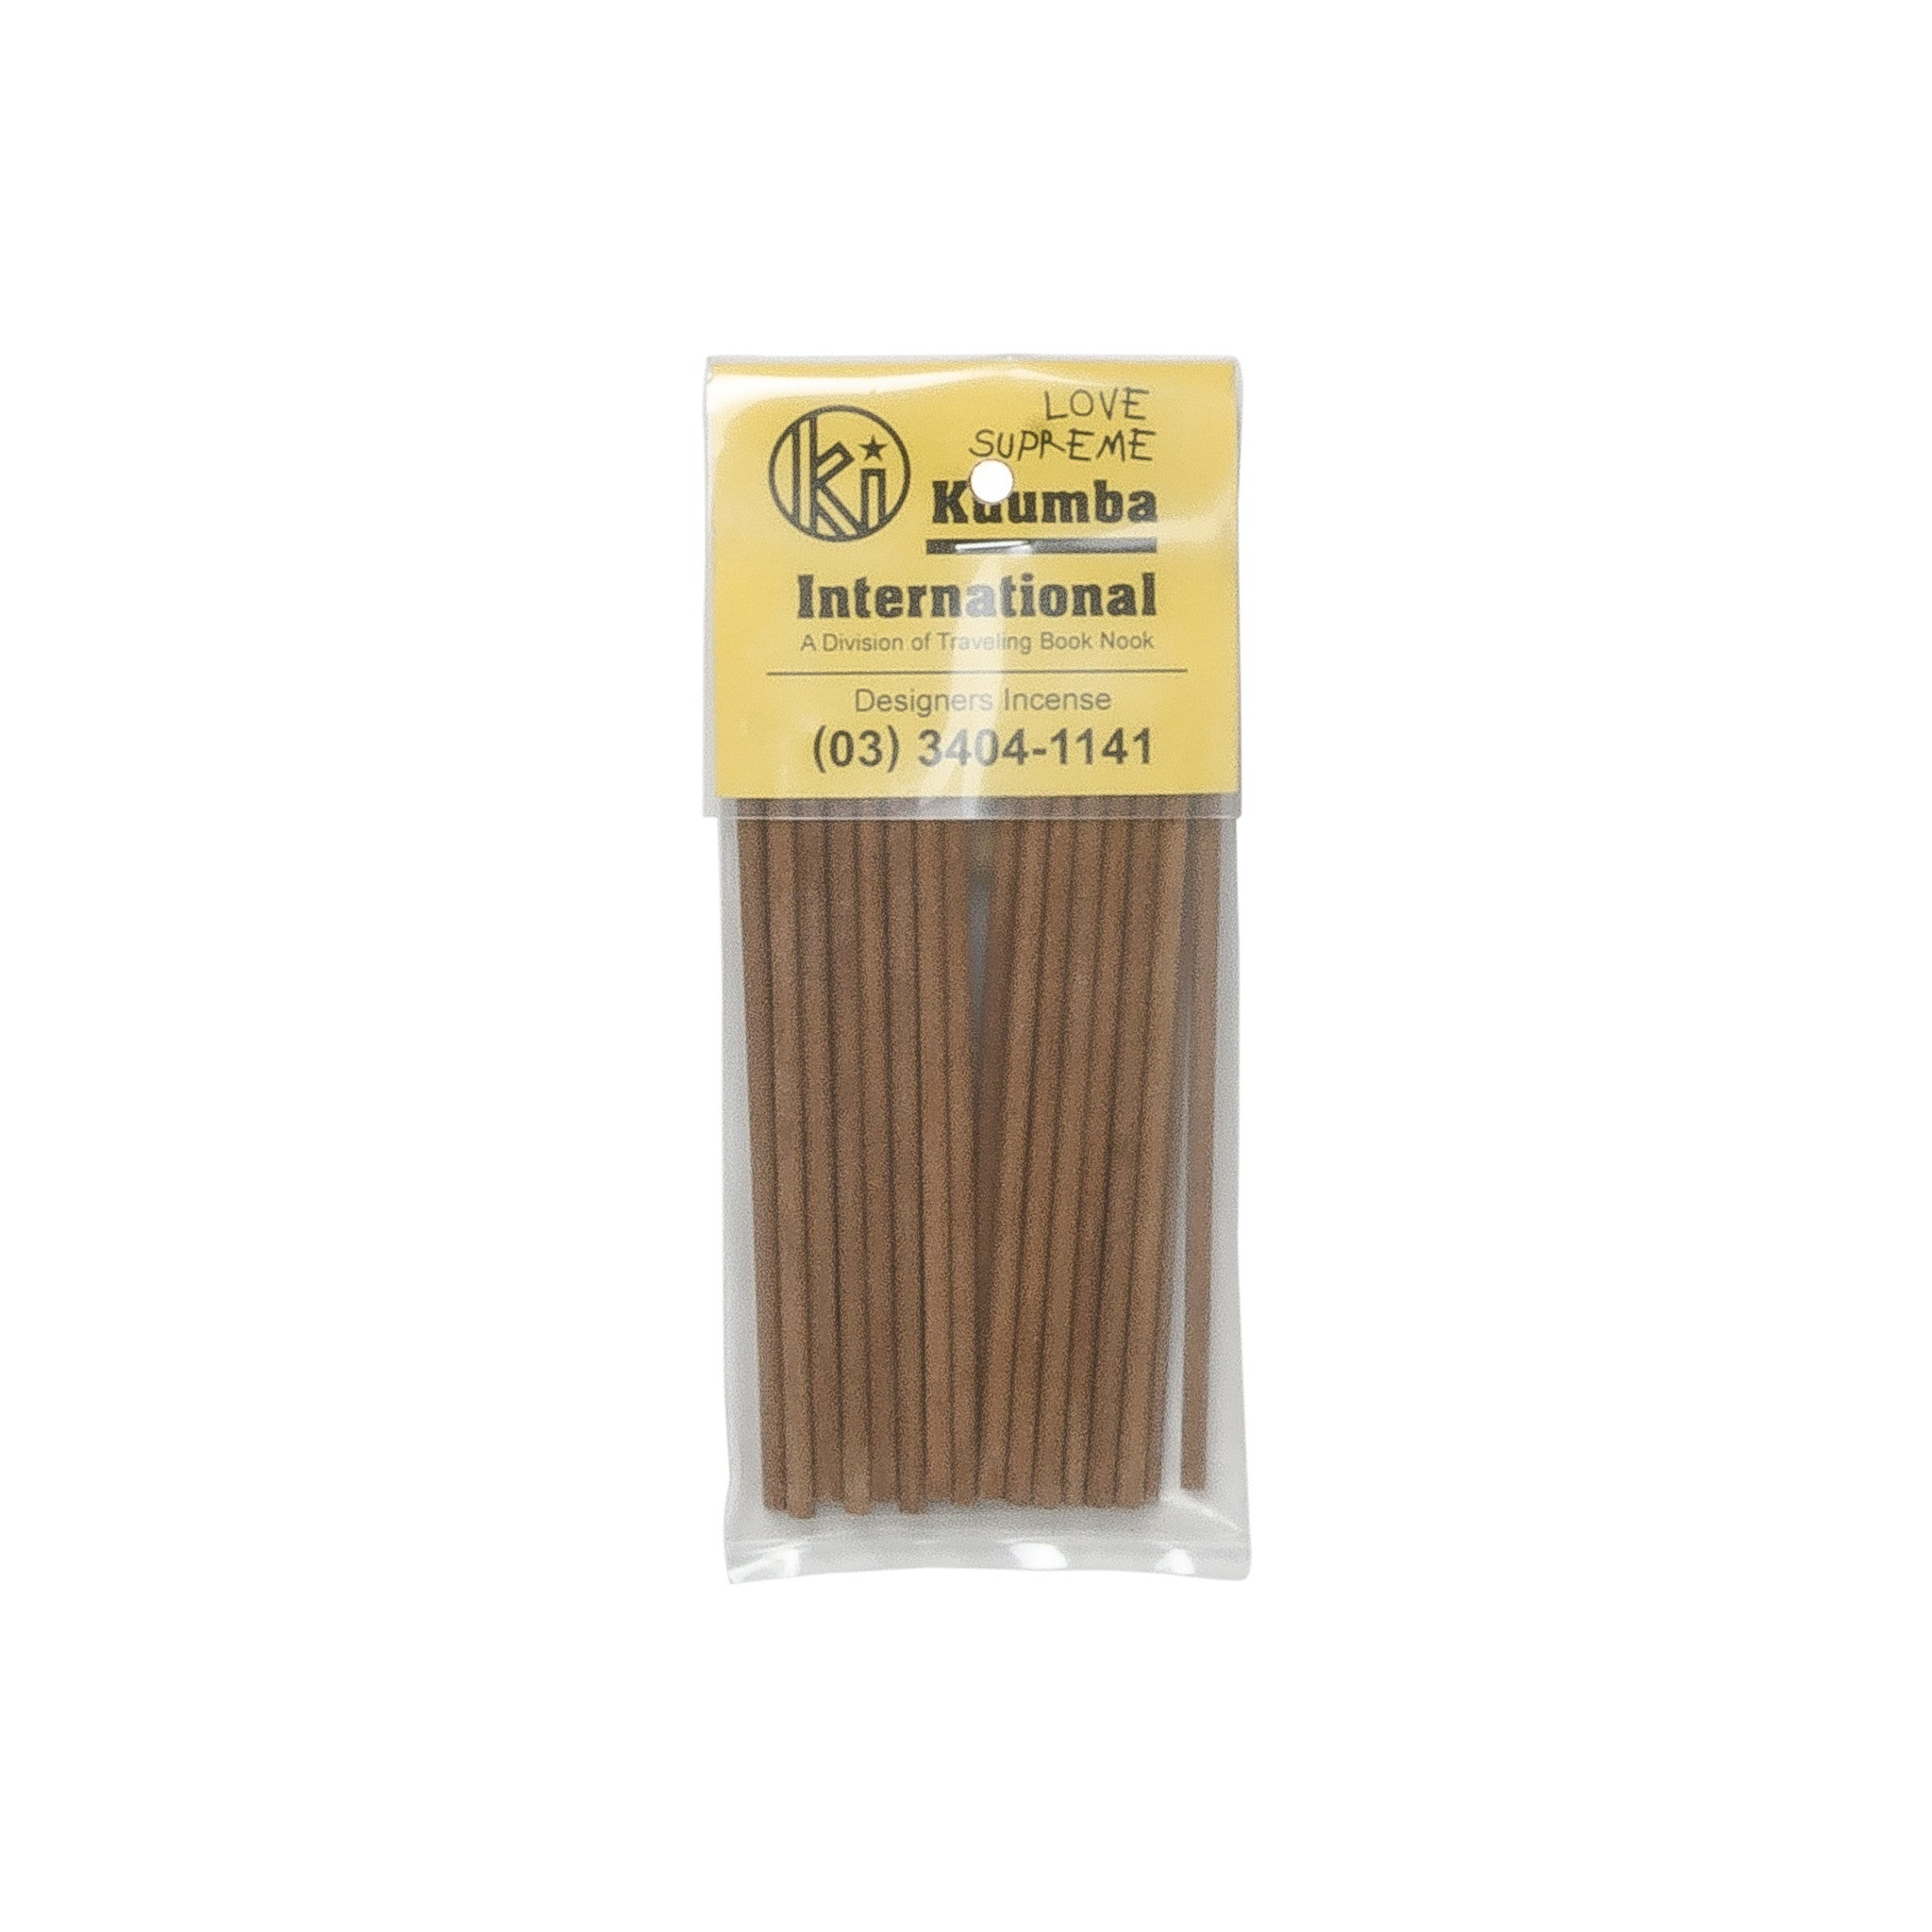 Love Supreme Mini Incense